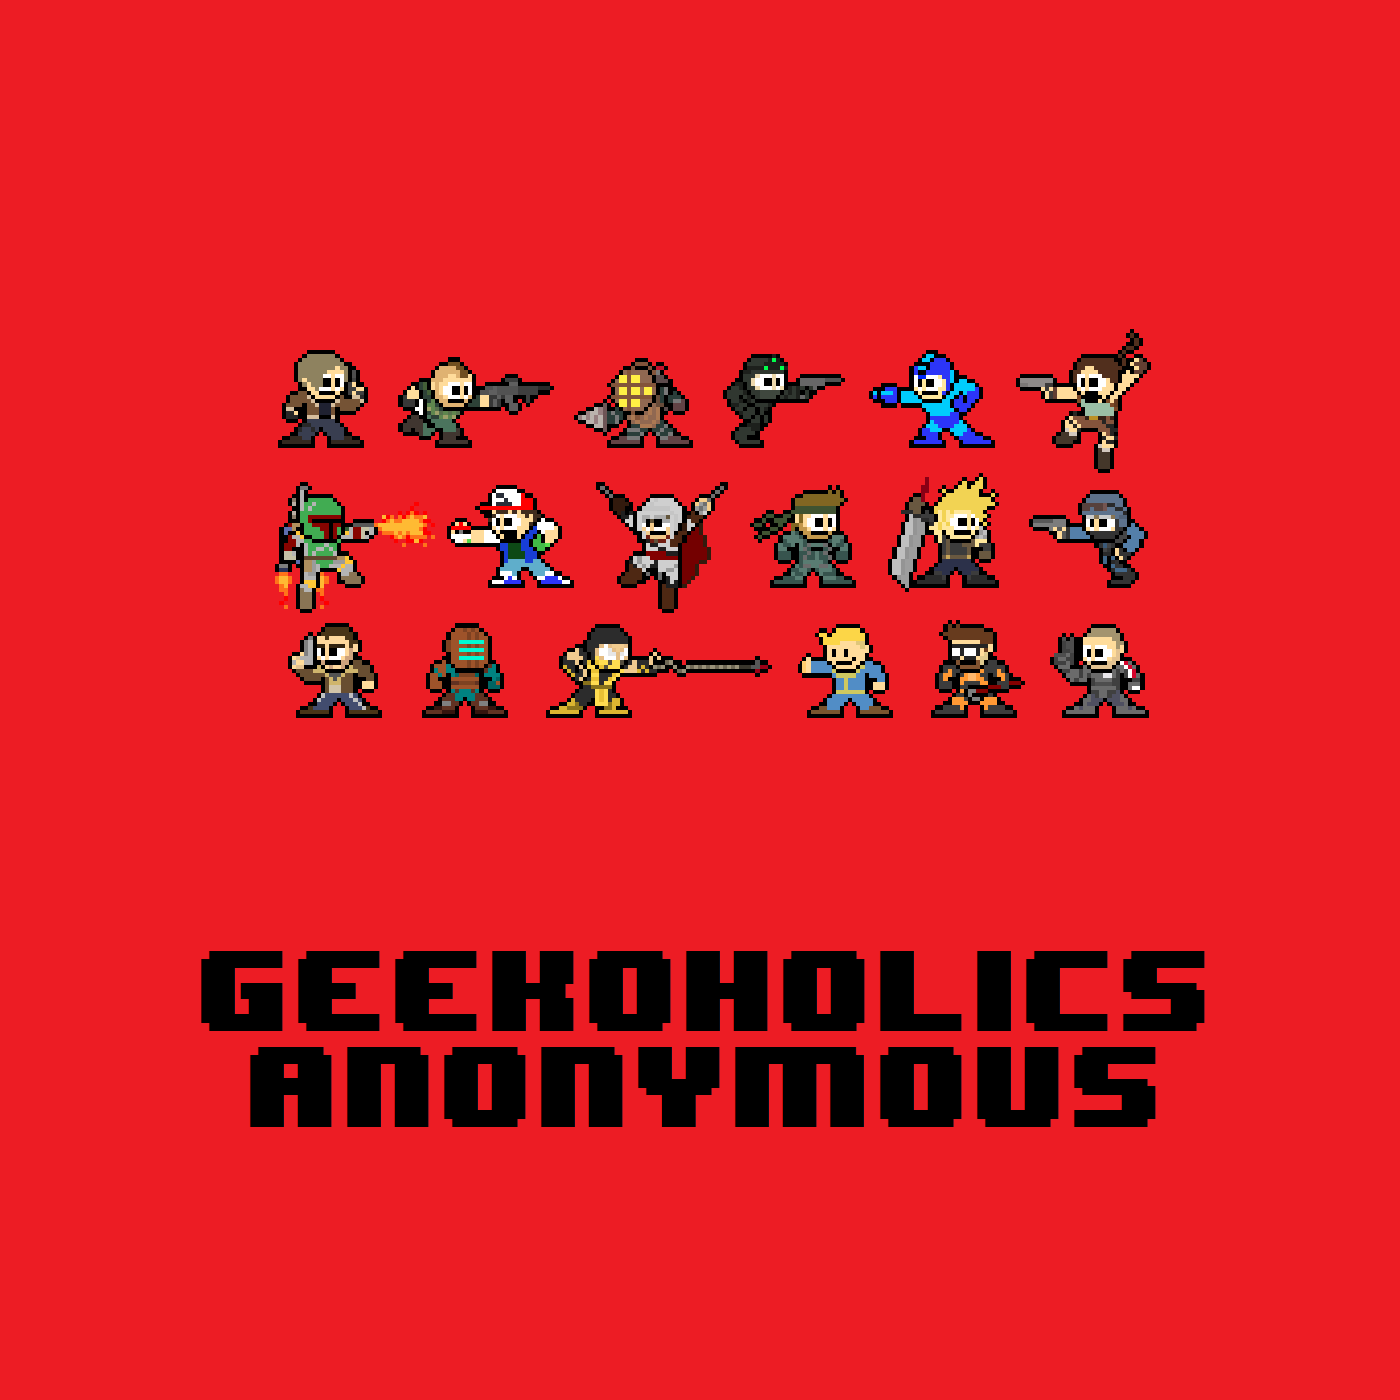 PlayStation Showcase, Deathloop, Genshin Impact, and more - Geekoholics Anonymous Podcast 323 show art